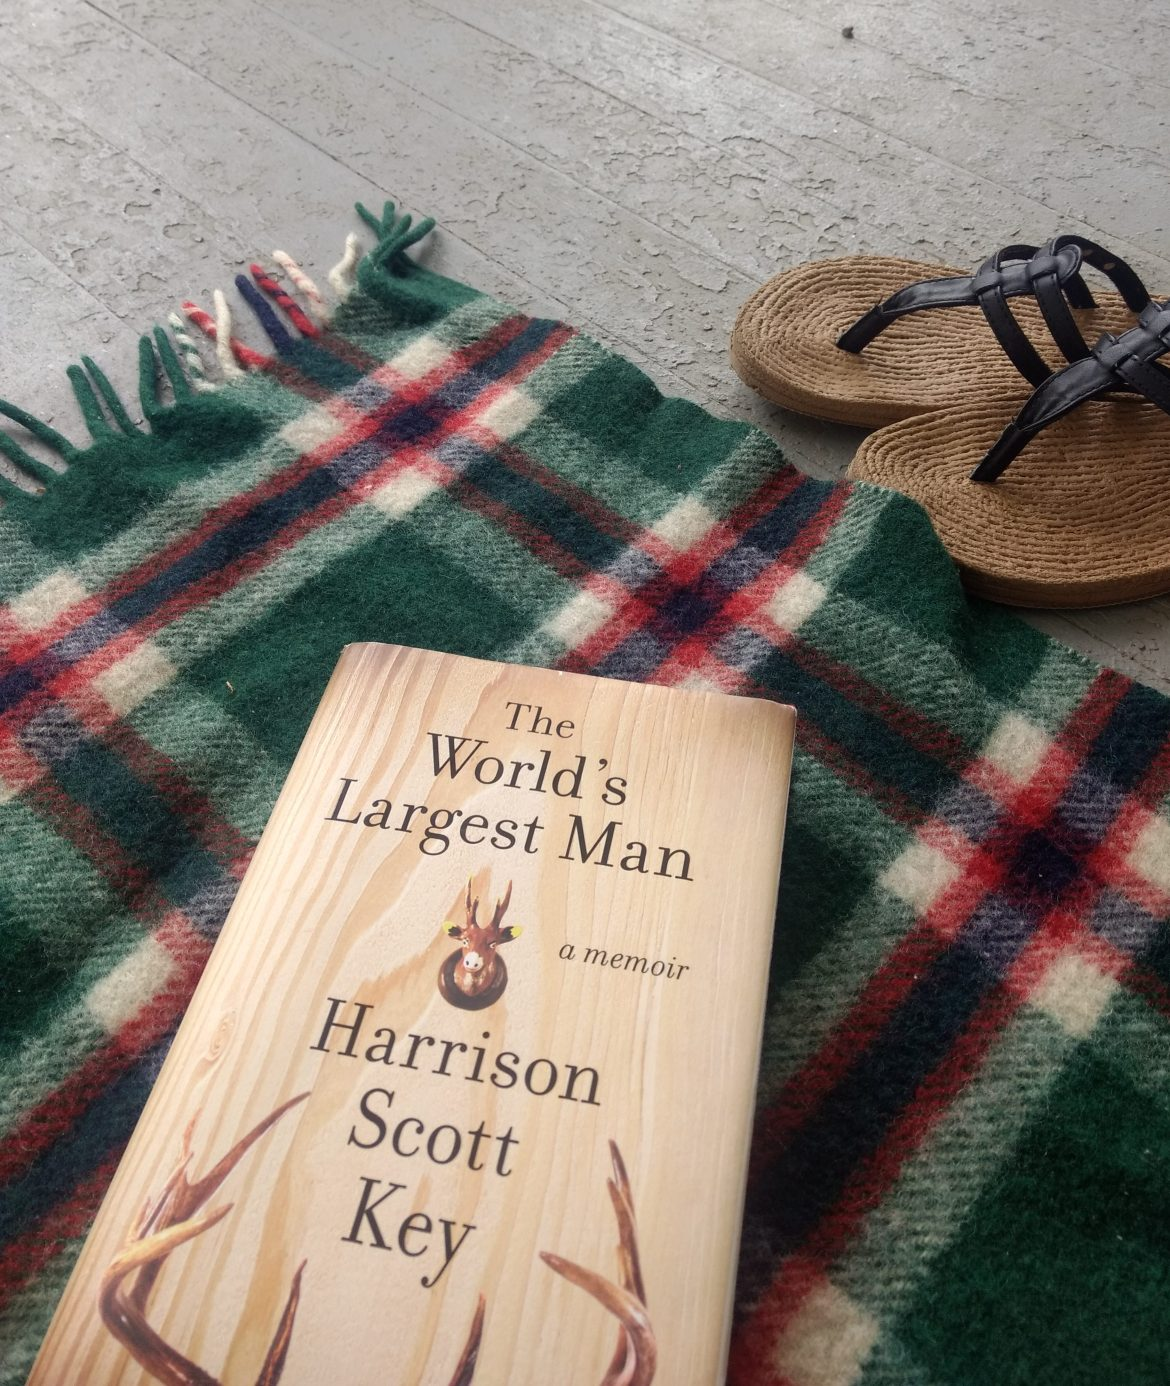 The Worlds Largest Man by Harrison Scott Key, on a blanket with sandals nearby